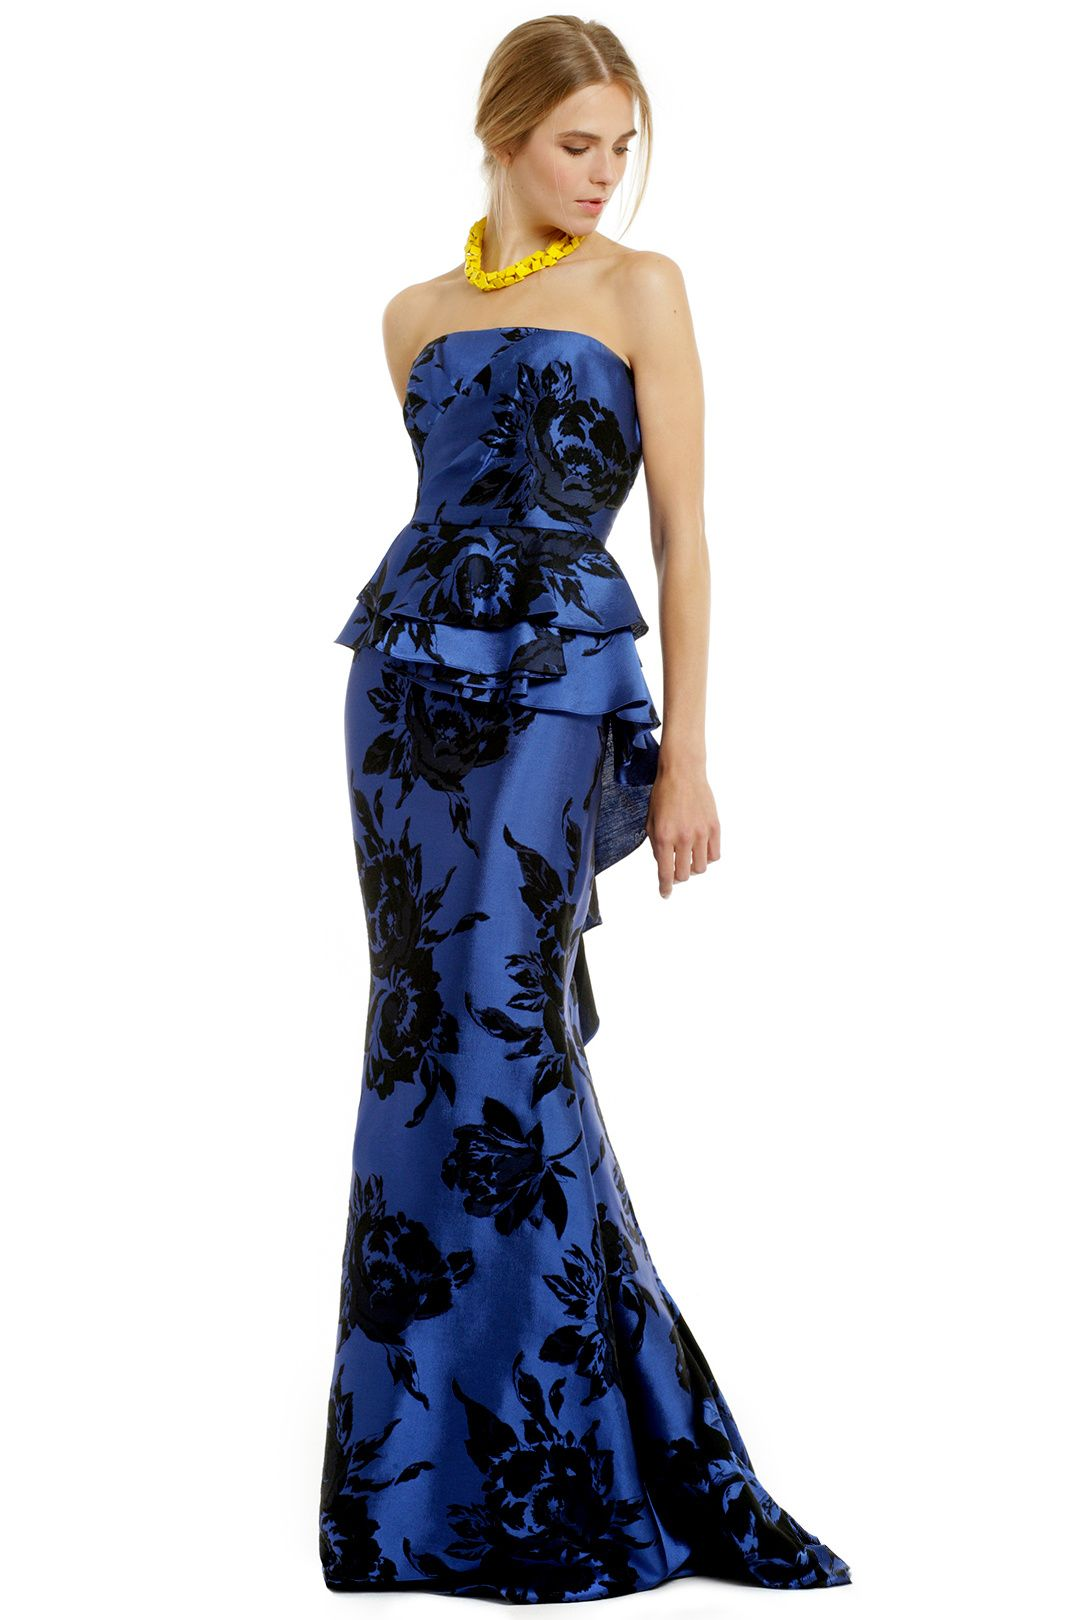 Stamped With Flowers Gown by Badgley Mischka ($990 retail or rent ...